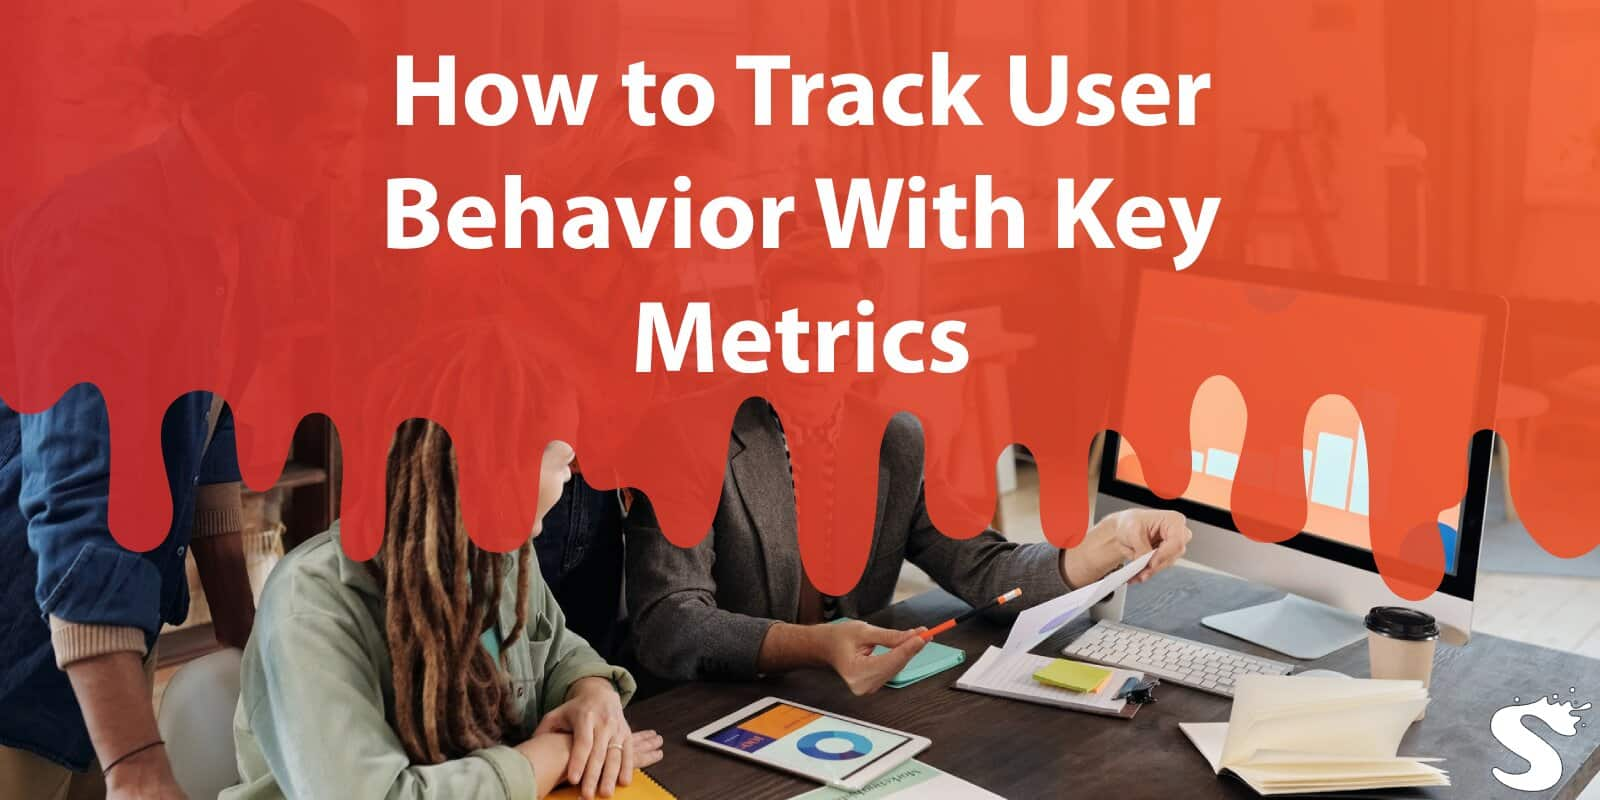 How to Track User Behavior With Key Metrics Like Clicks, Traffic Type, and Device